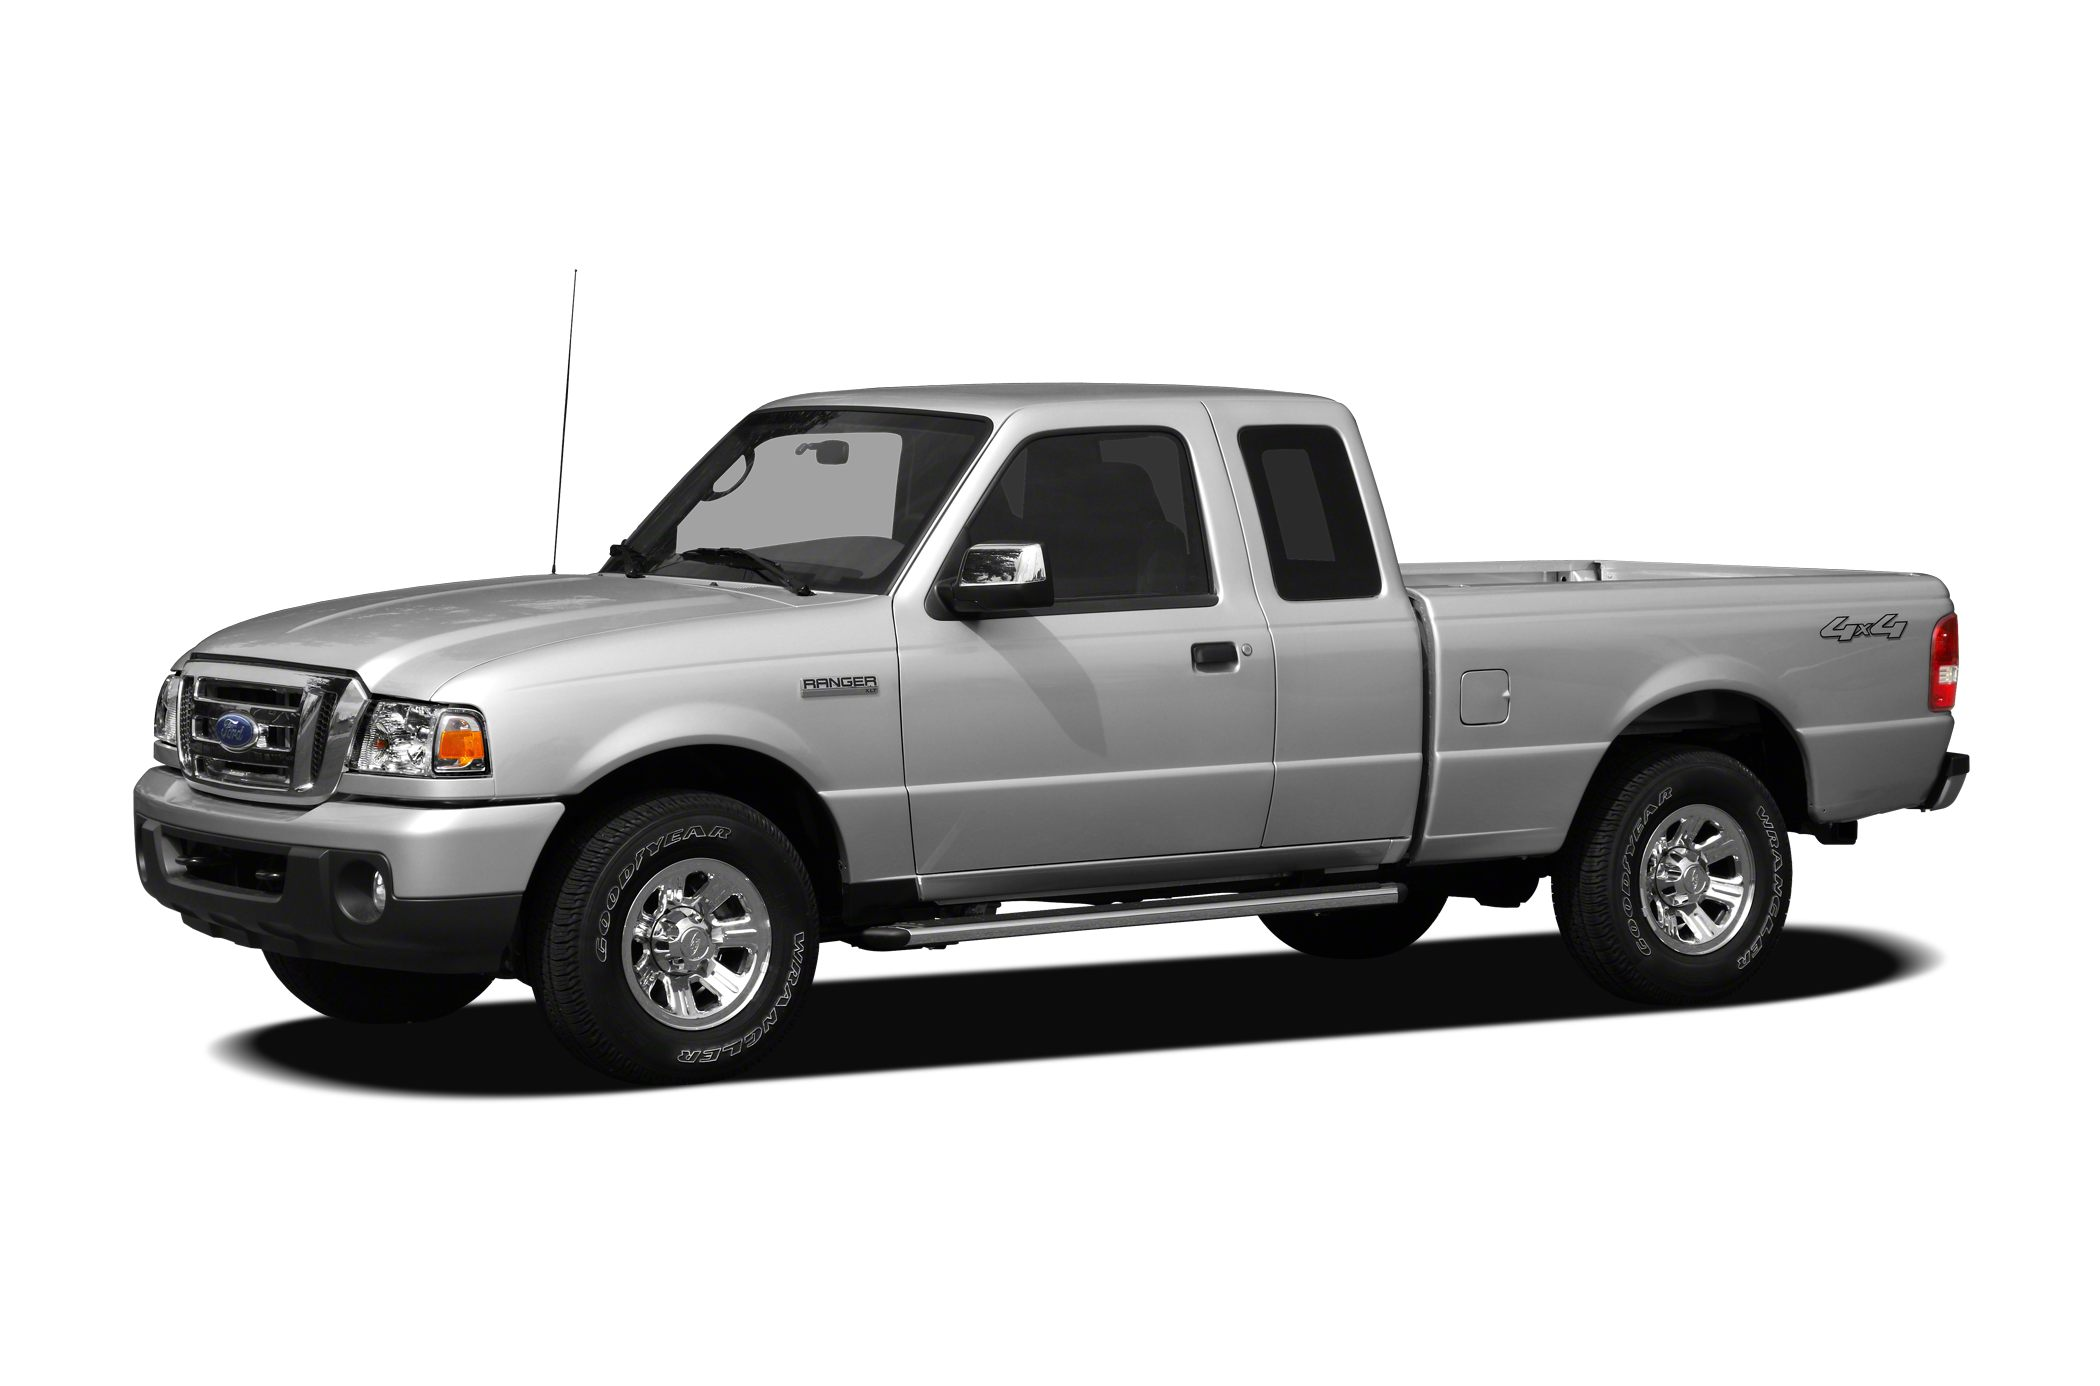 2011 Ford Ranger Sport Extended Cab Pickup for sale in Summersville for $23,999 with 29,965 miles